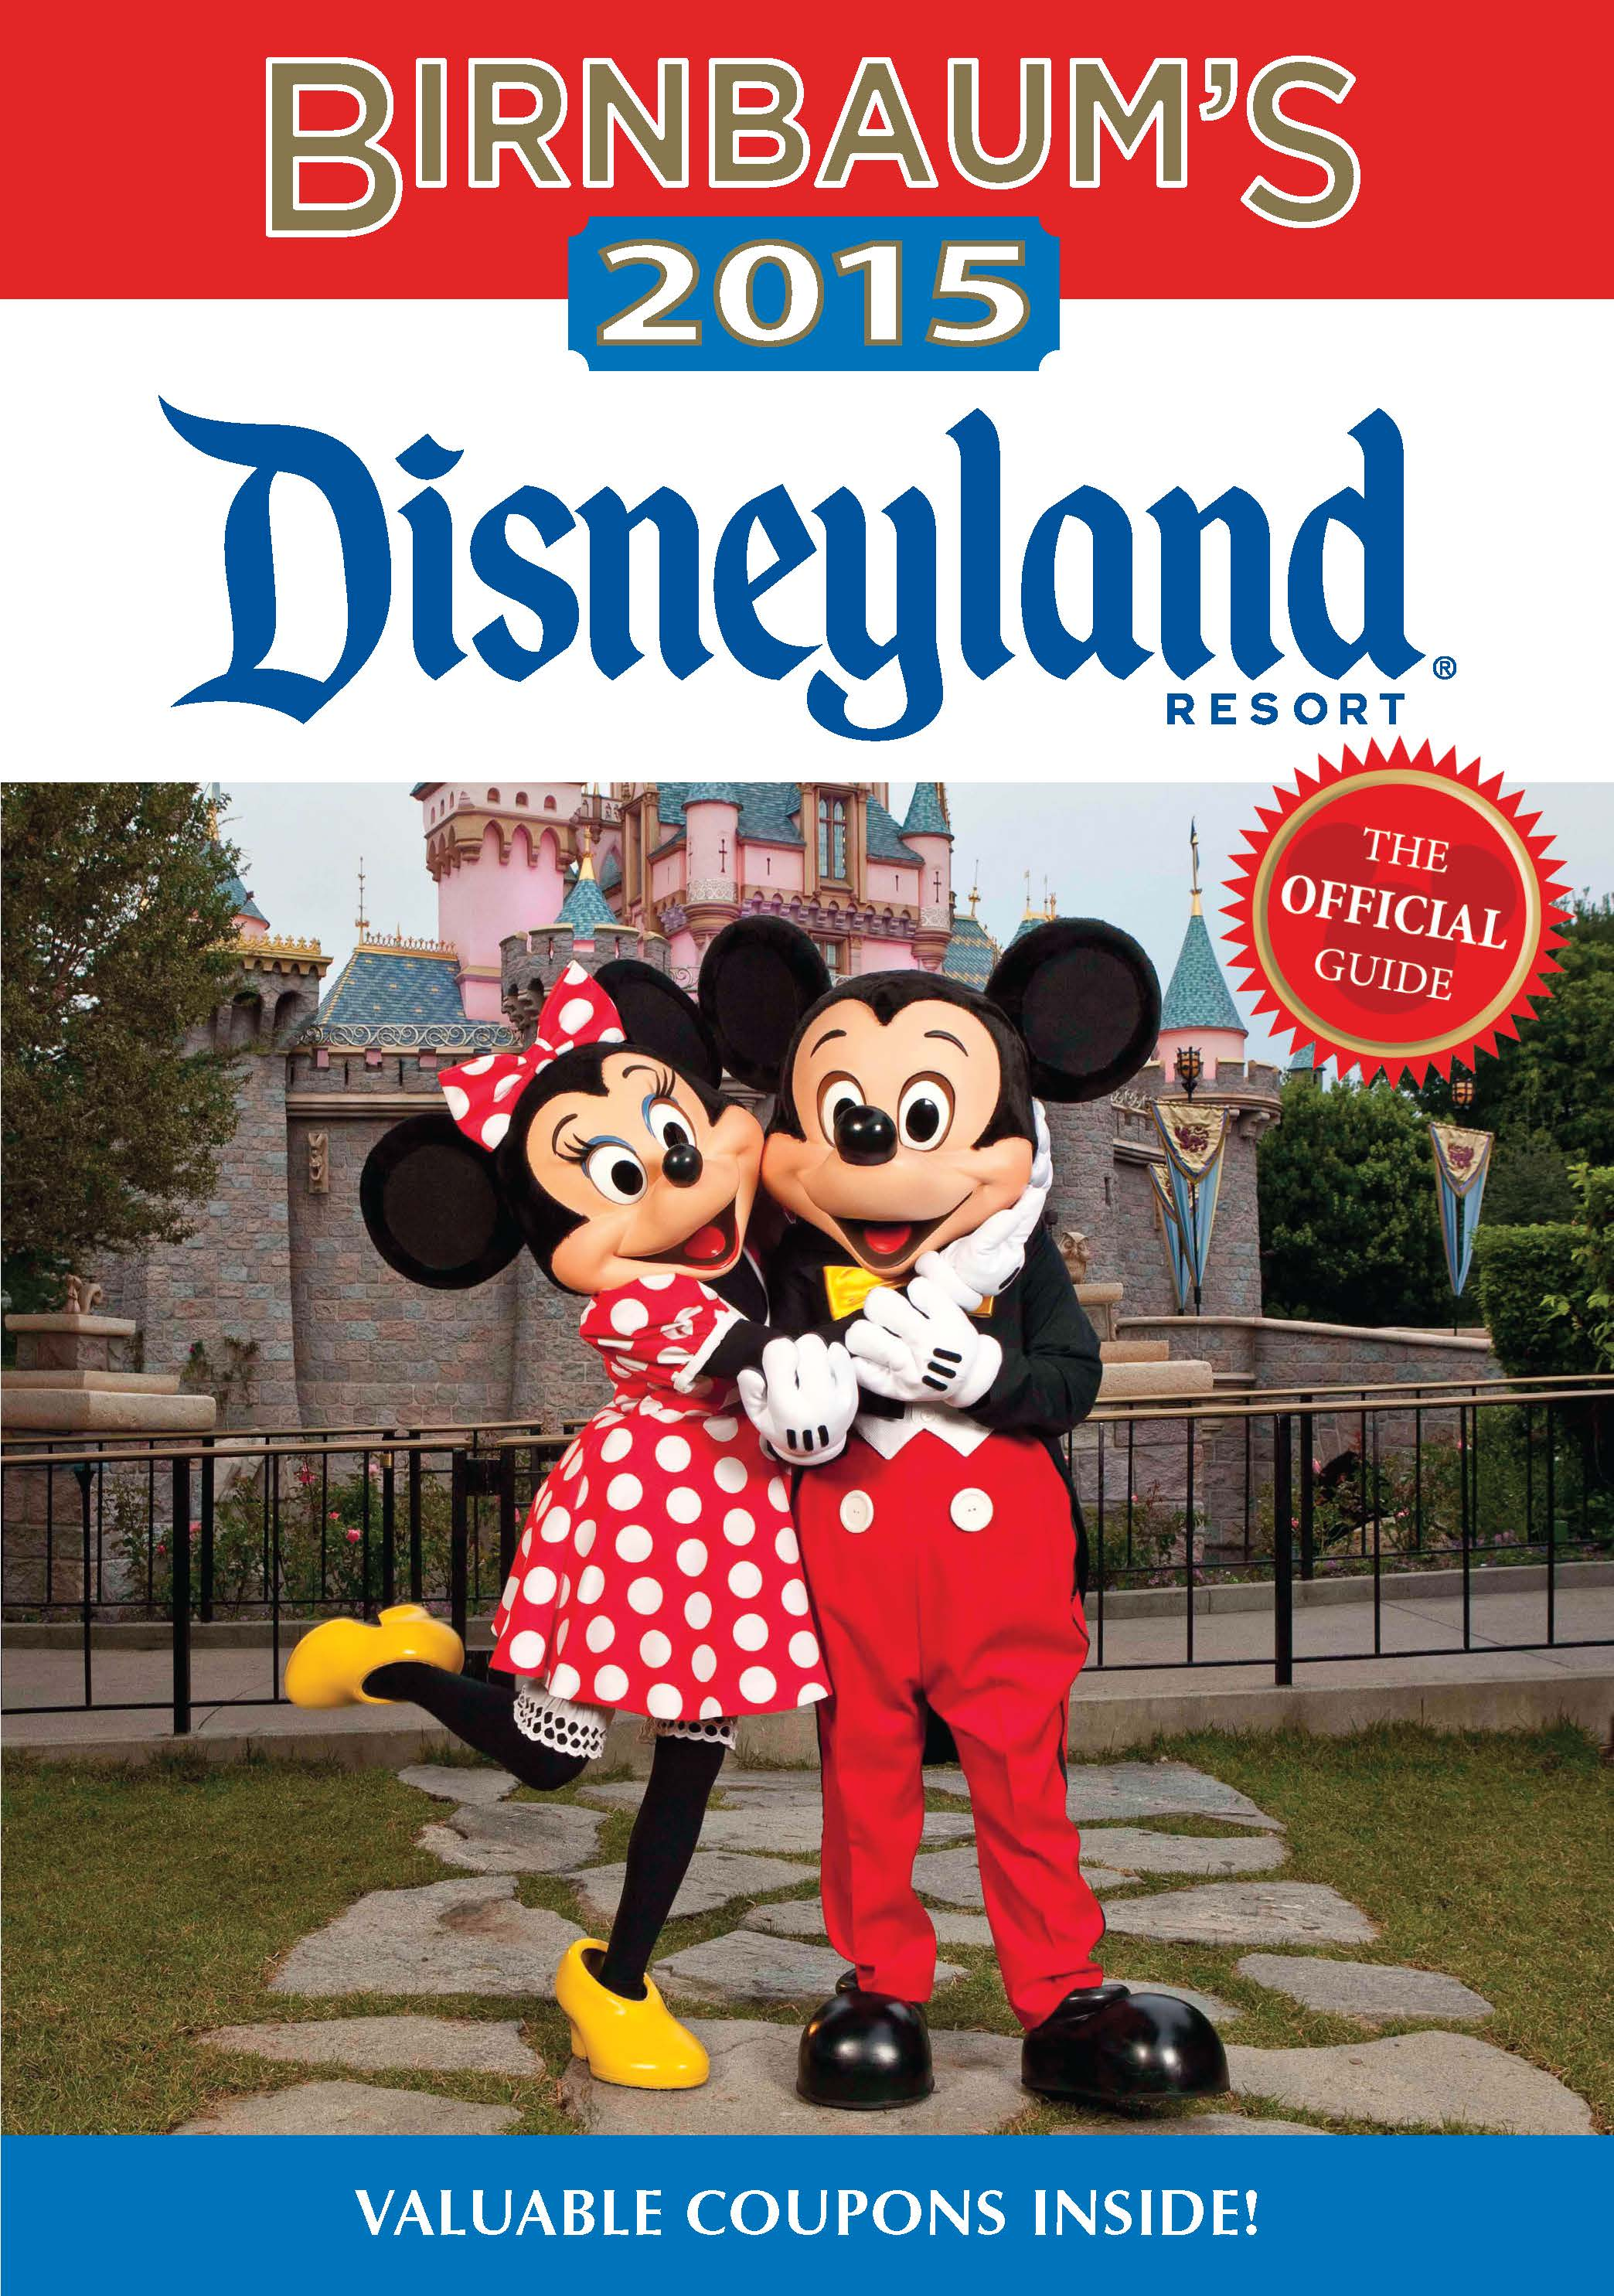 Birnbaum's 2015 Disneyland Resort